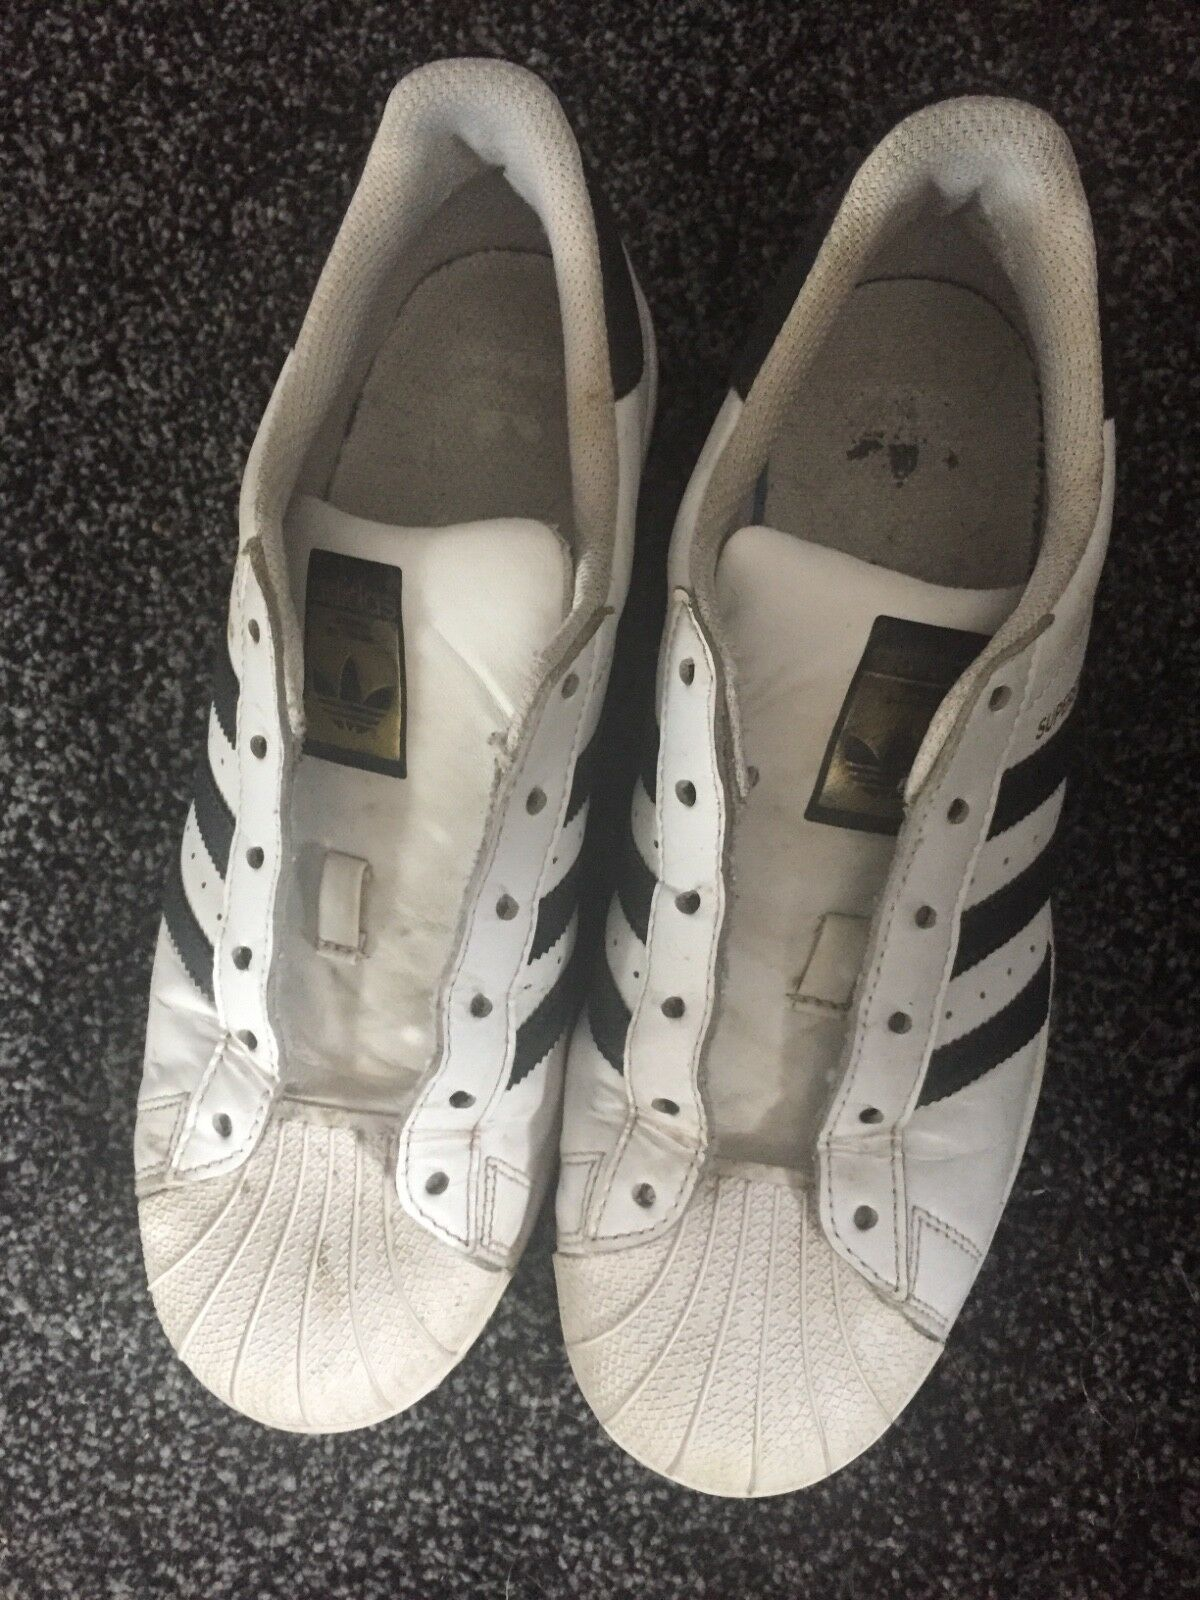 adidas superstars size 5.5 no laces Casual wild